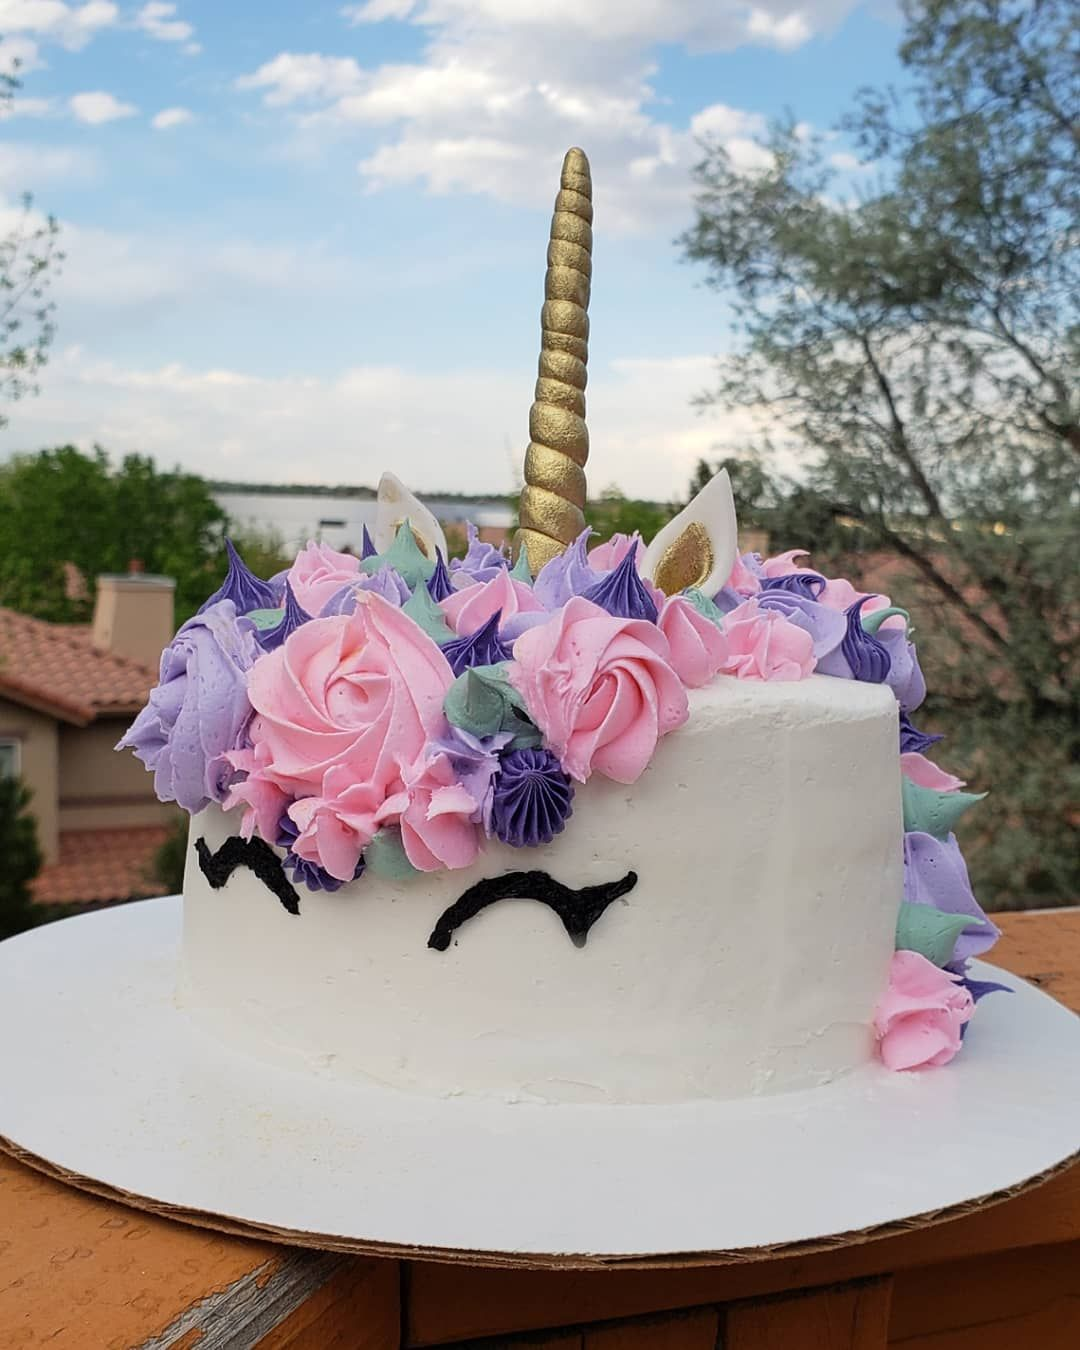 My first unicorn cake!! I made this little smash cake for